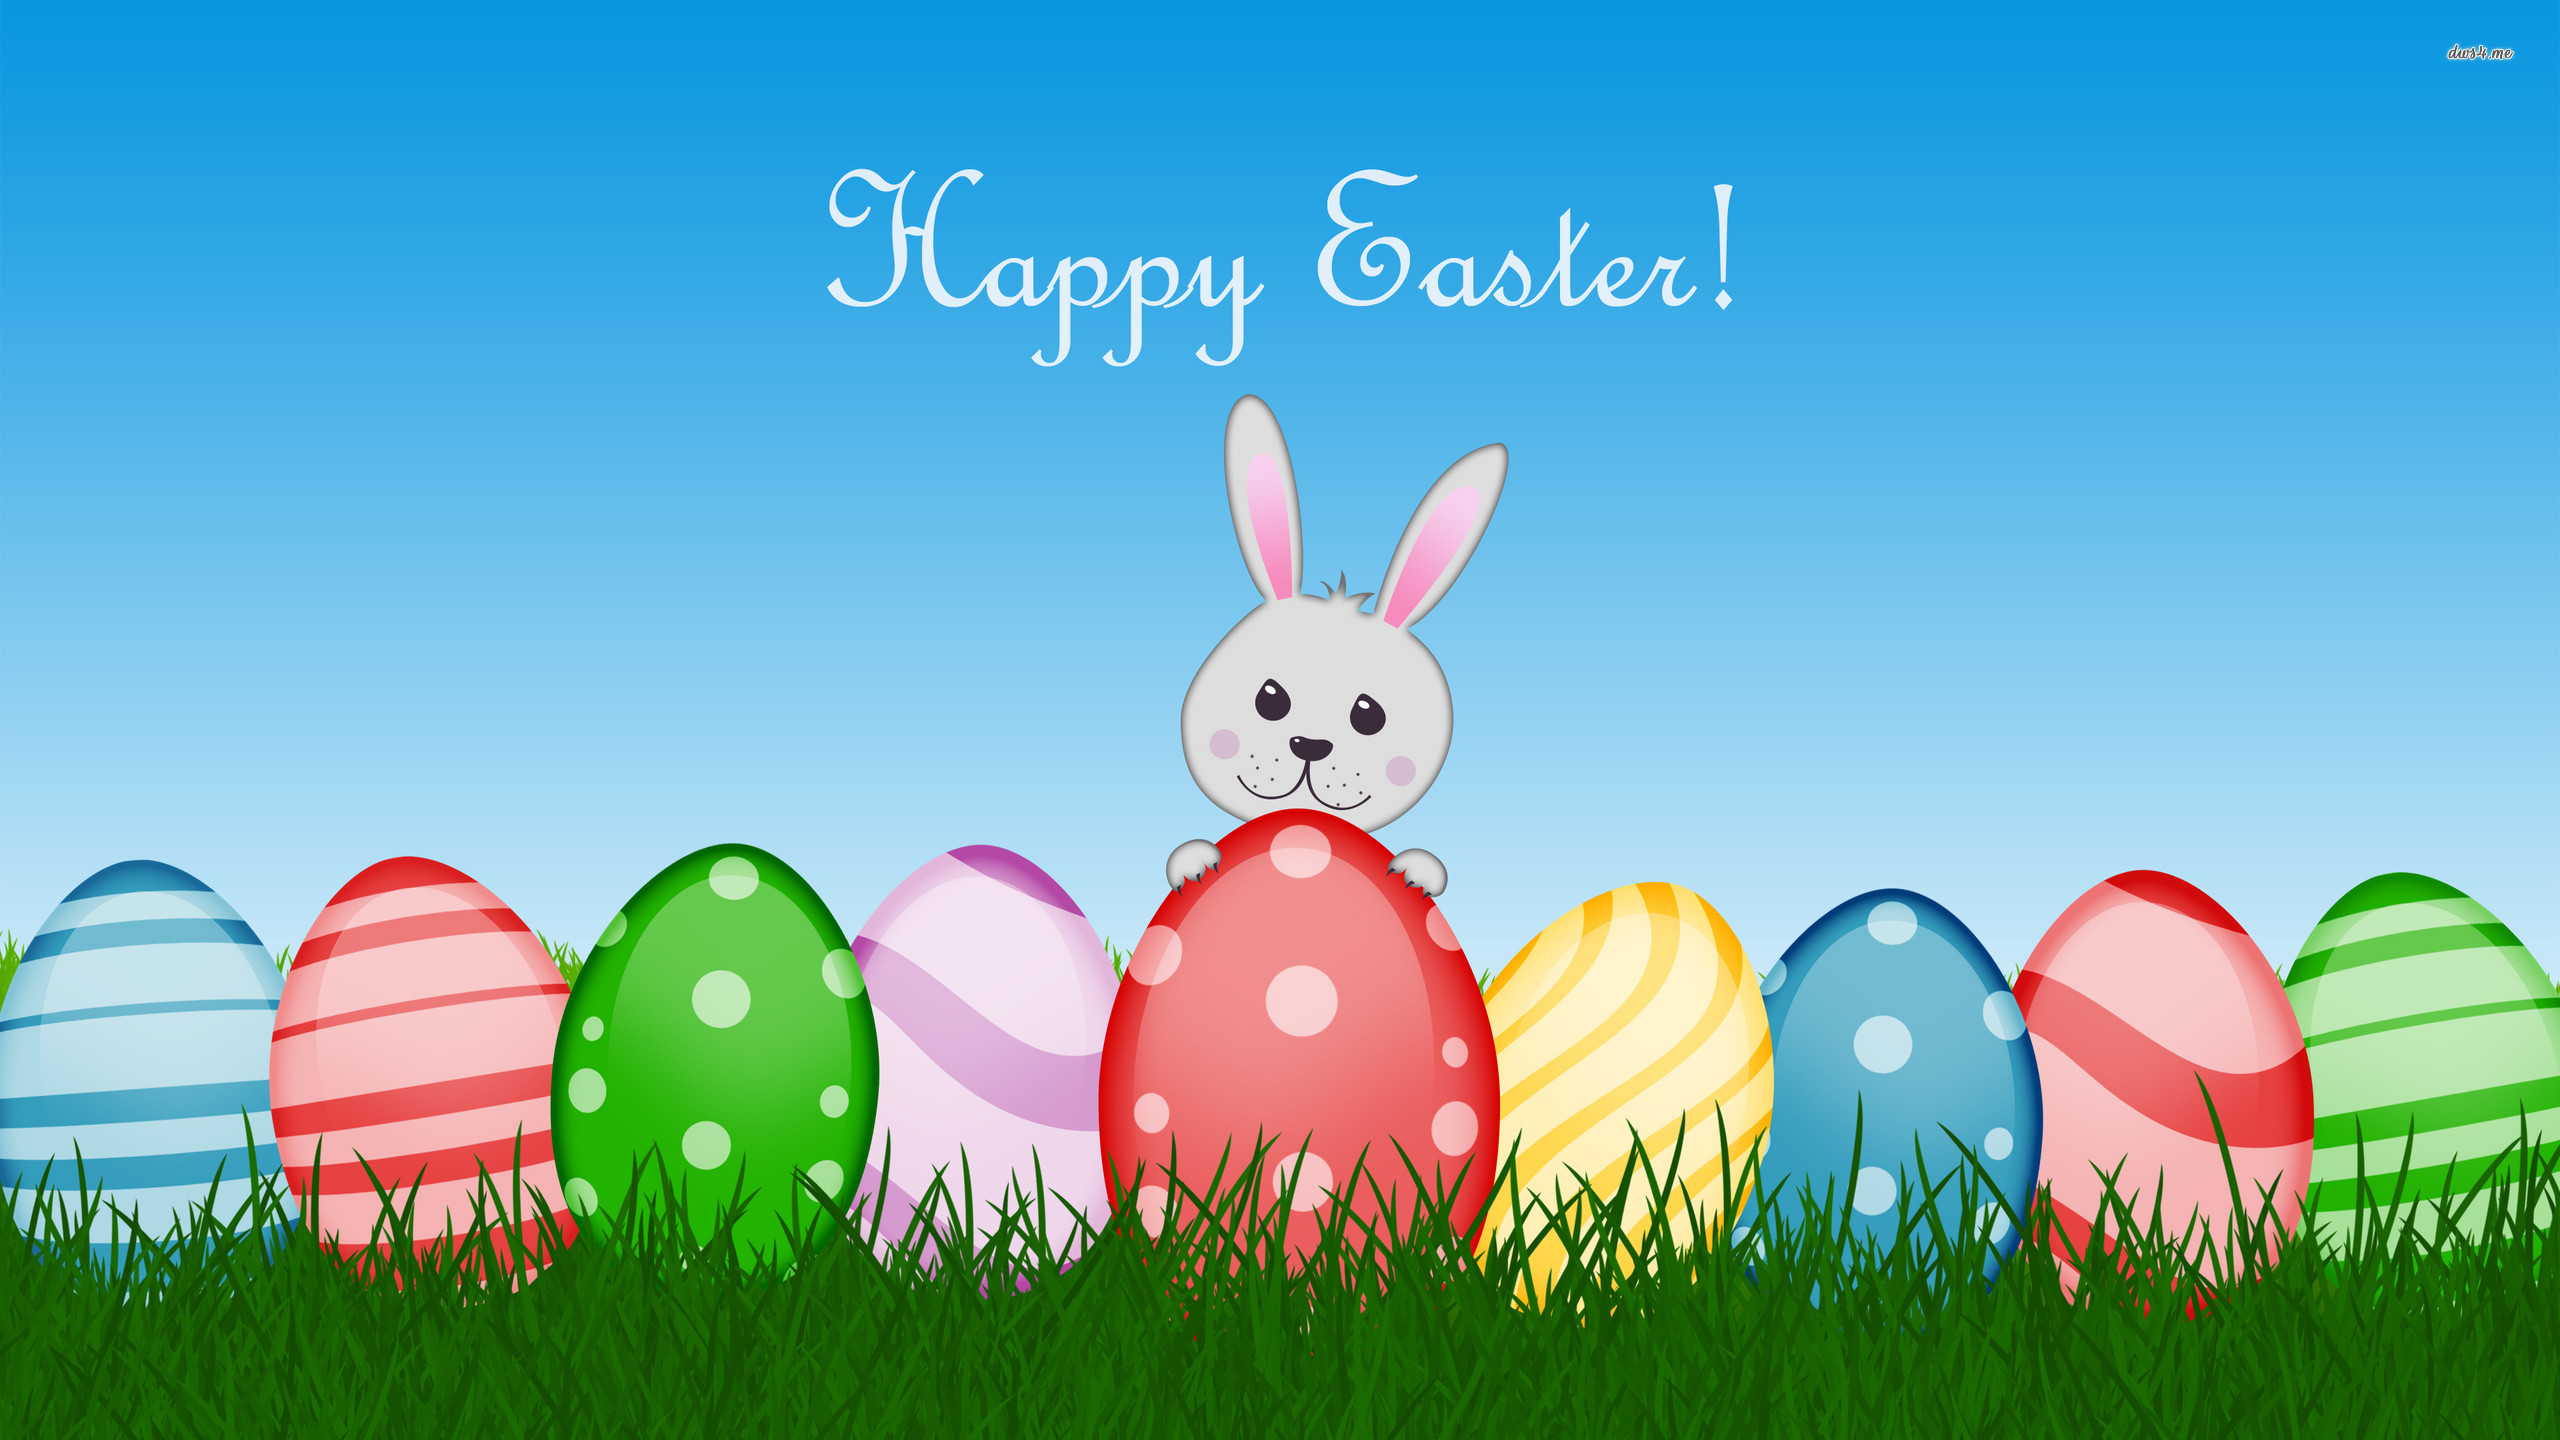 Easter Wallpapers Hd Download Free Colletion 60: Beautiful Easter Desktop Wallpaper (74+ Images